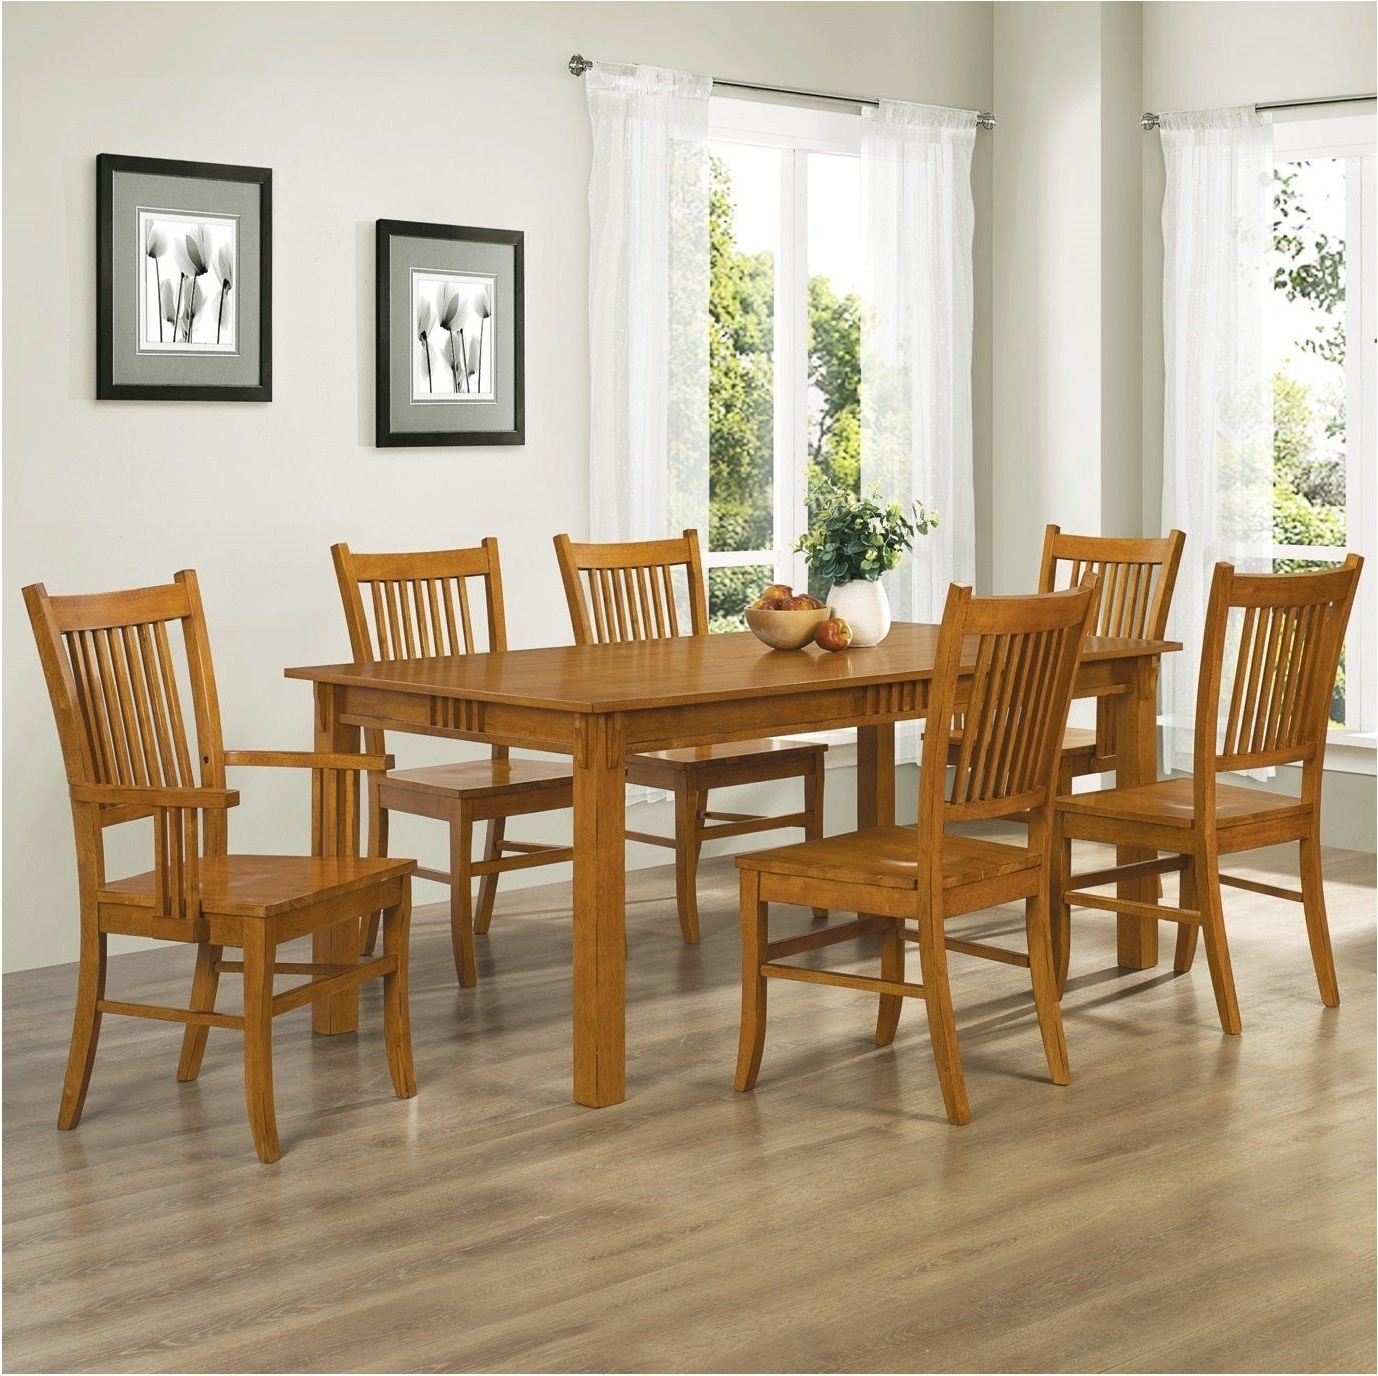 Excellently Elegant Black Dining Sets With 6 Chairs 23 Table And Within Most Popular 6 Seat Dining Tables (Gallery 25 of 25)